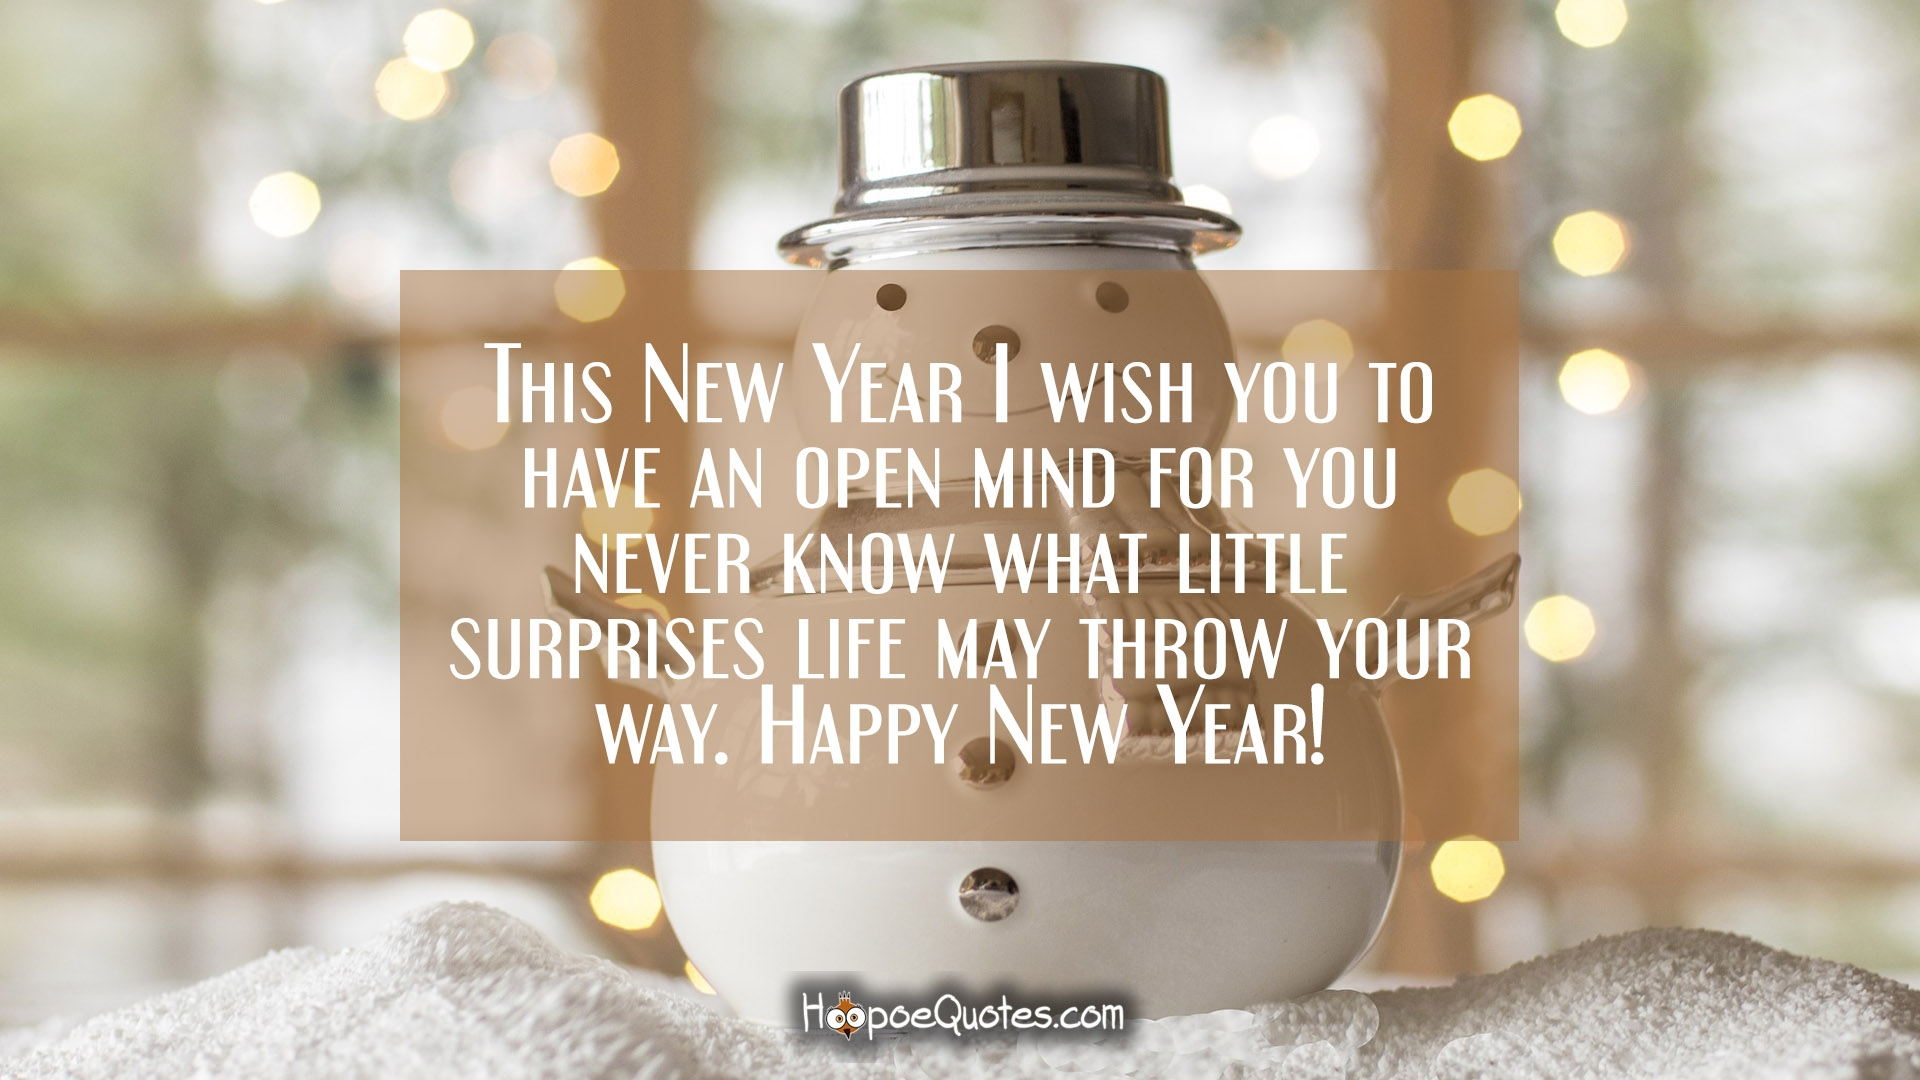 this new year i wish you to have an open mind for you never know what little surprises life may throw your way happy new year